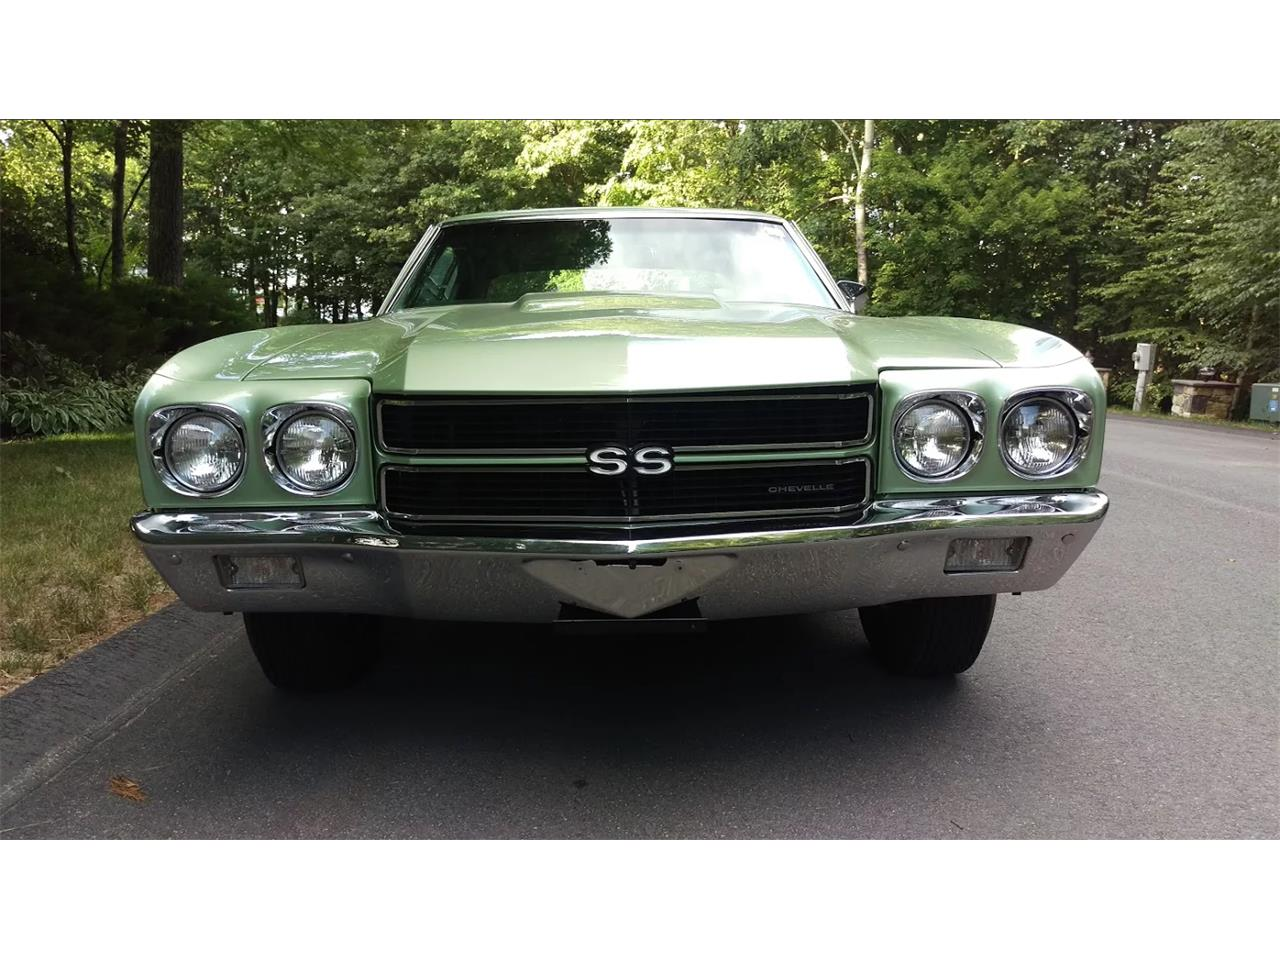 Large Picture of Classic '70 Chevelle SS located in Massachusetts - $69,000.00 Offered by a Private Seller - IWGL